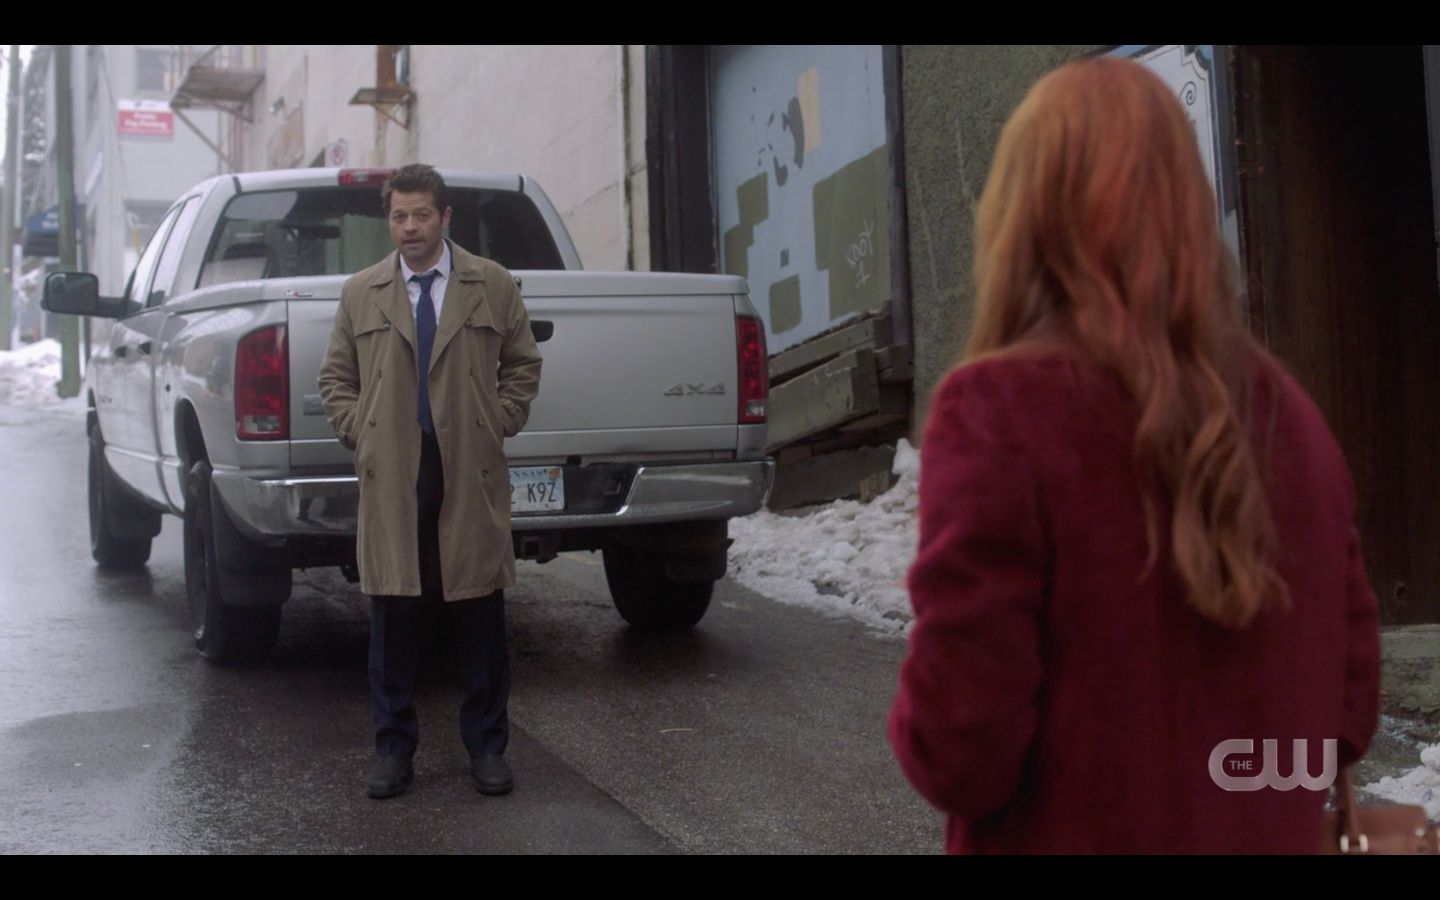 SPN Castiel Misha Collins says goodbye to Anael game night